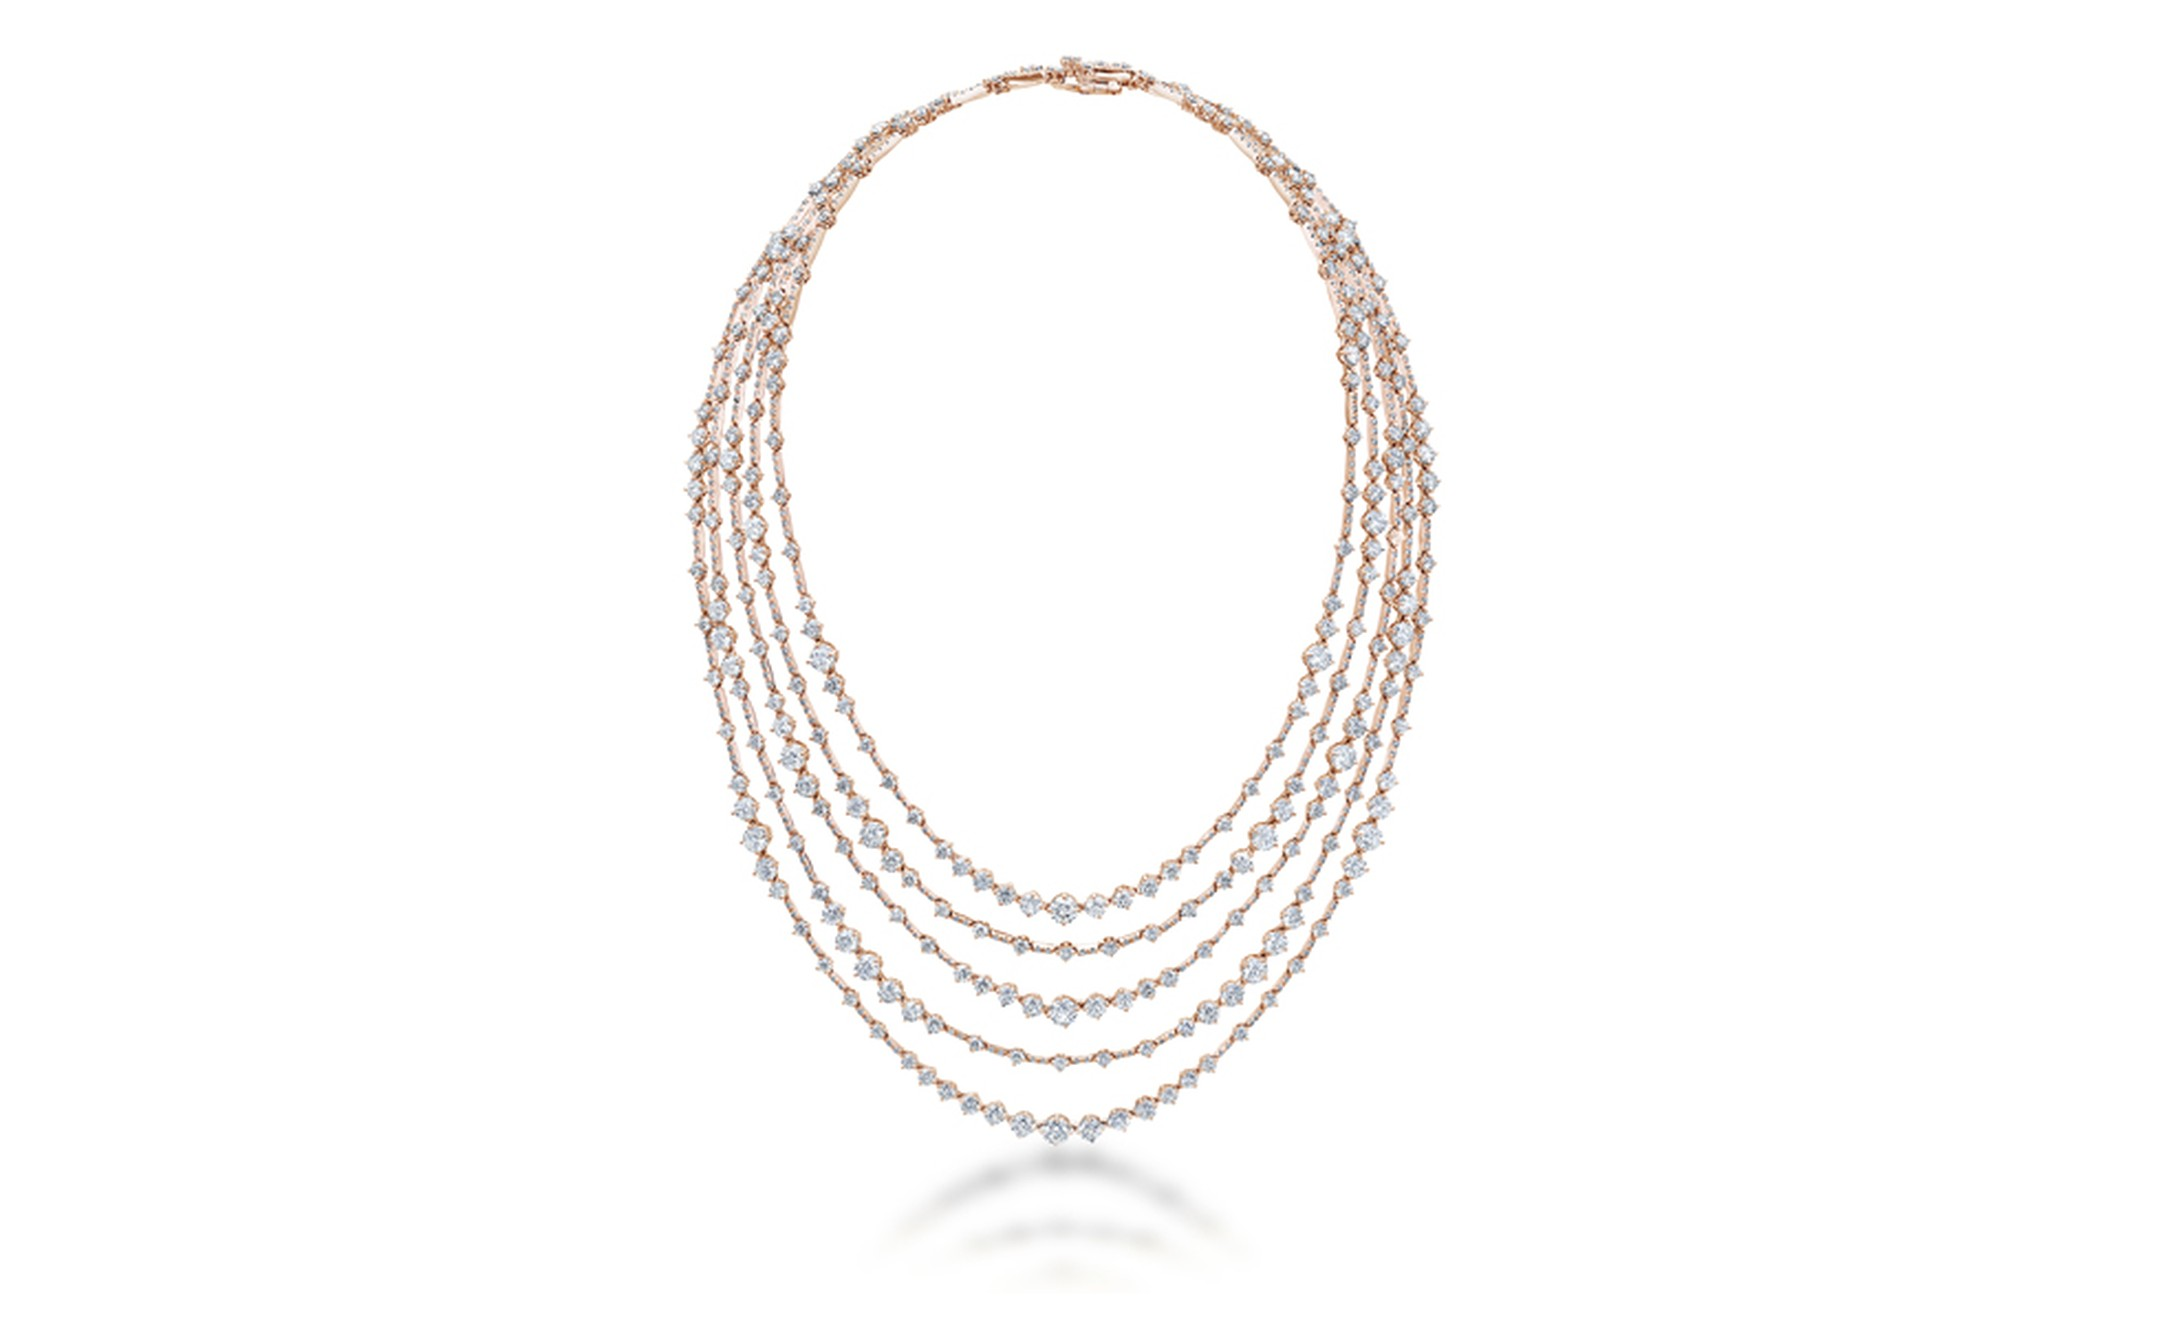 DE BEERS, Arpeggia Collection, five-line necklace in pink gold. POA